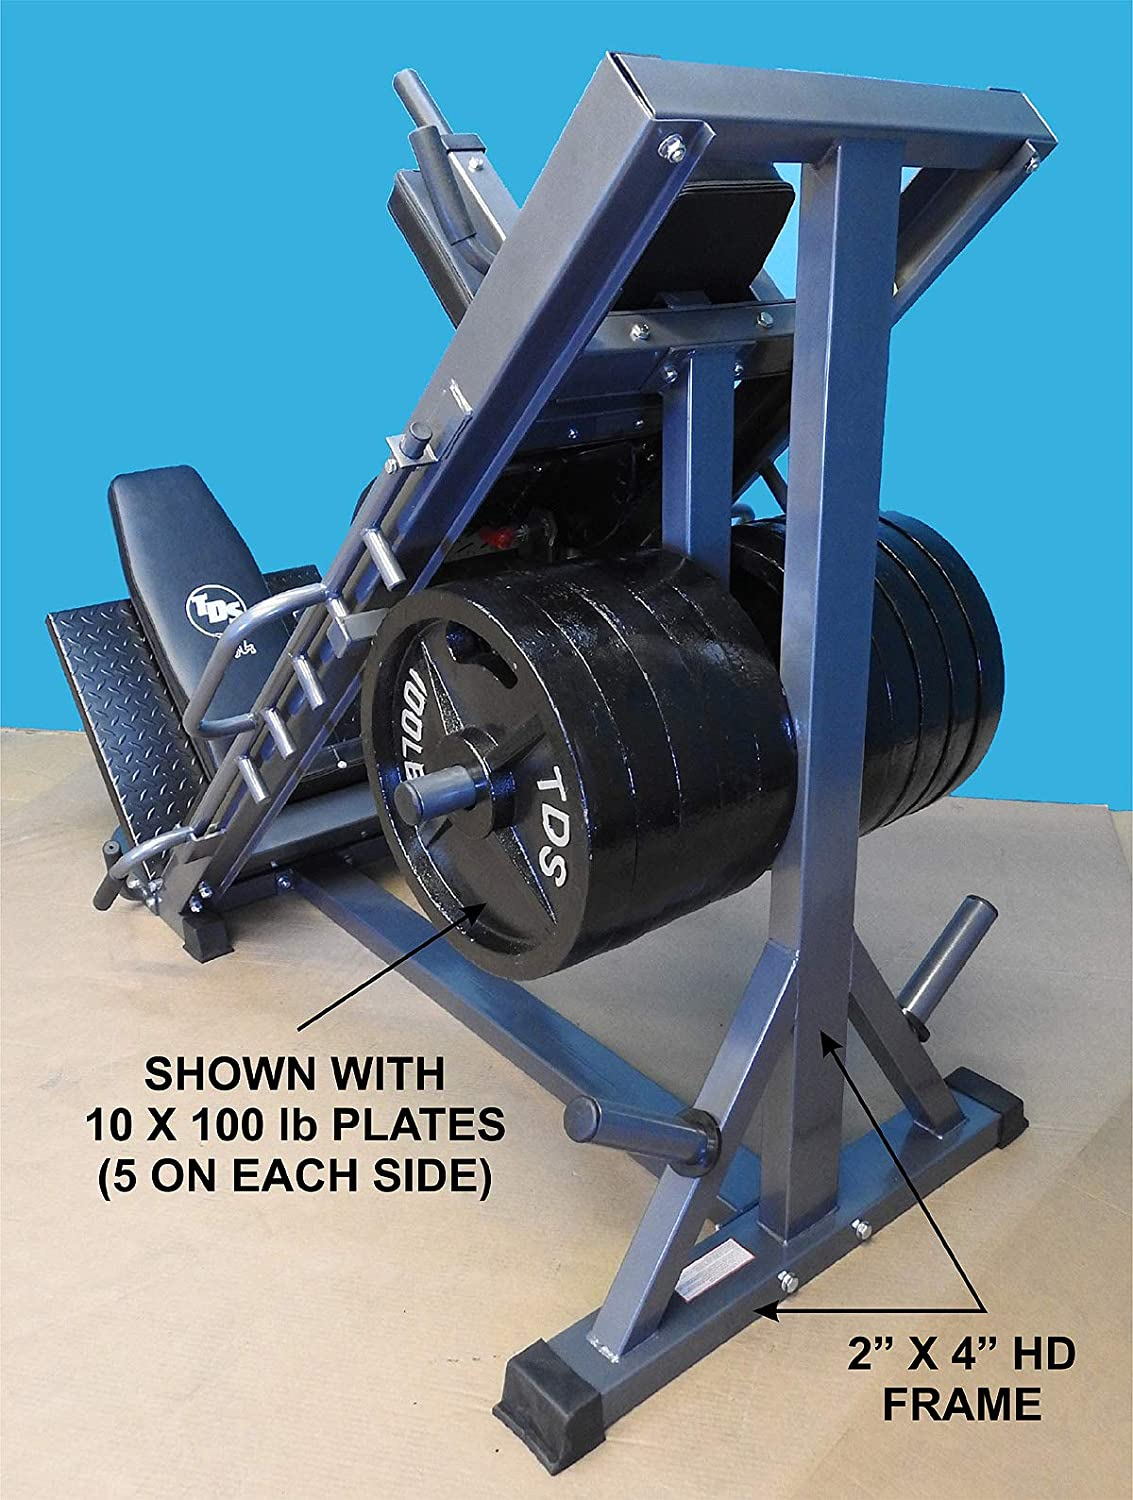 Wide Adj Deck Plates HACK Squat 8 Wheels for Flawless Movement Forward Thrust Pads 4-Way Hip Sled to use as Leg Press Calf Raise to give a Full Lower Body Workout Unit has DLX